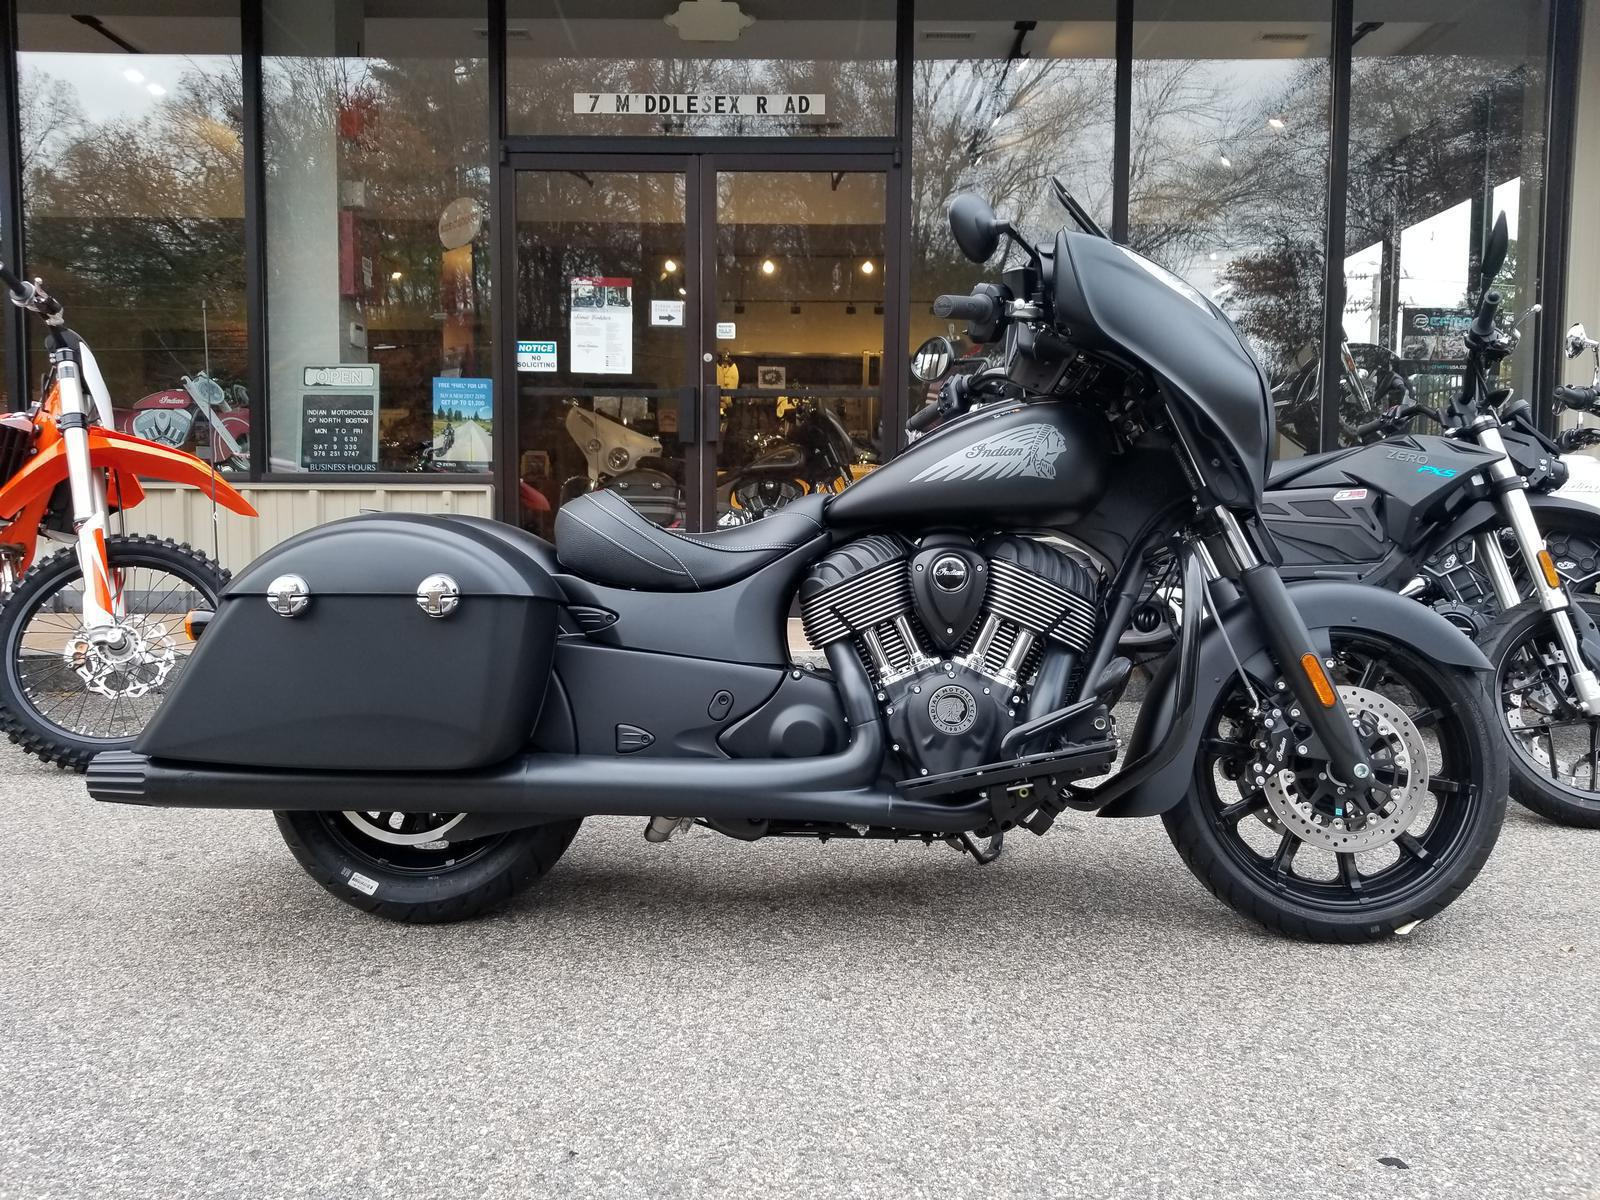 2018 Indian Motorcycle Indian Chieftain Dark Horse for sale in ...